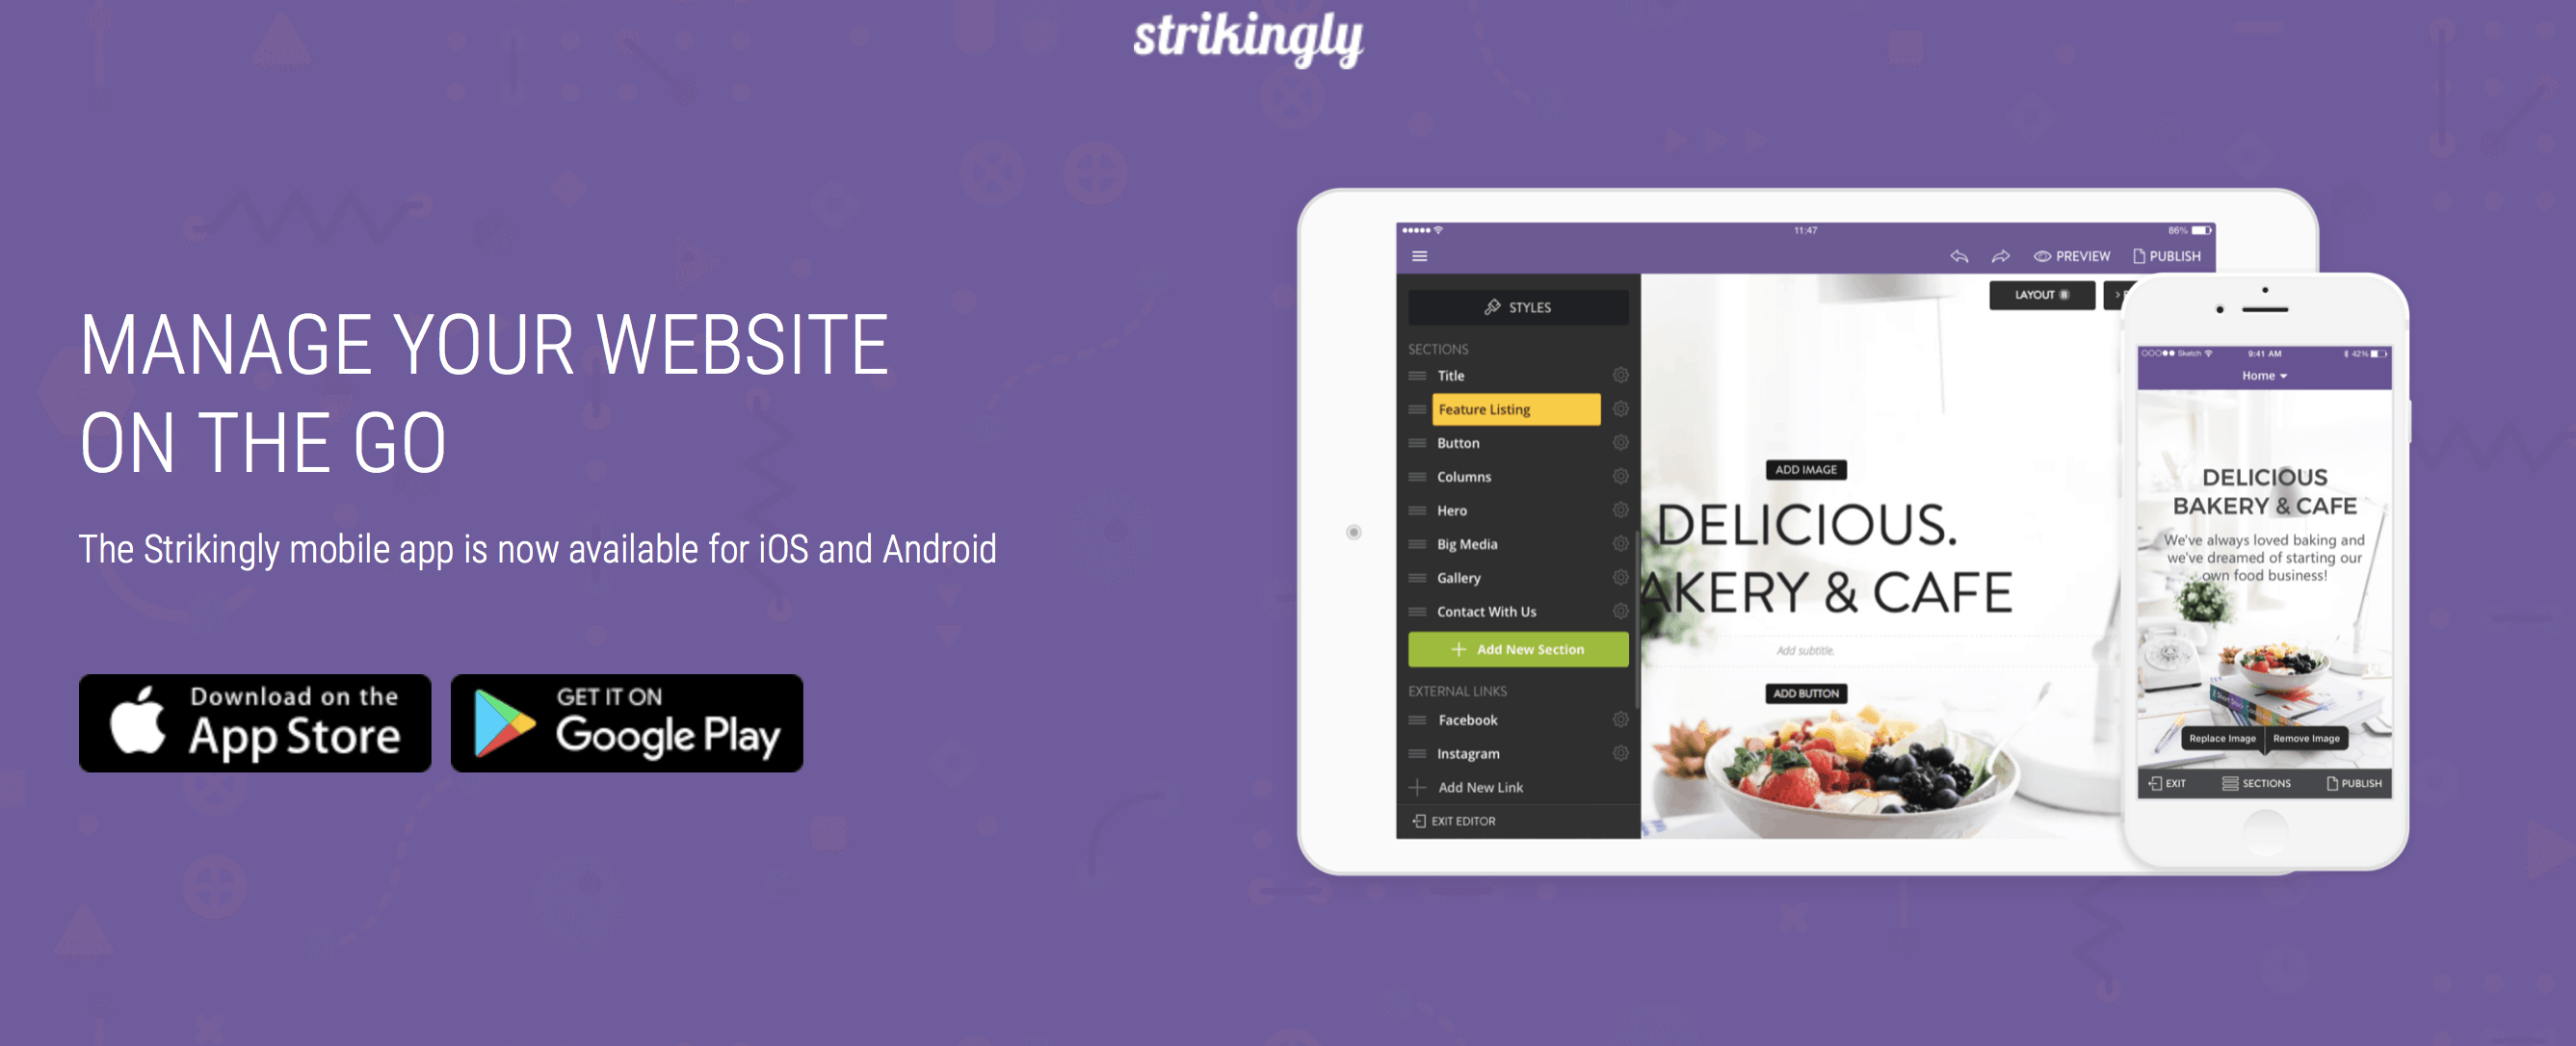 Strikingly Mobile app